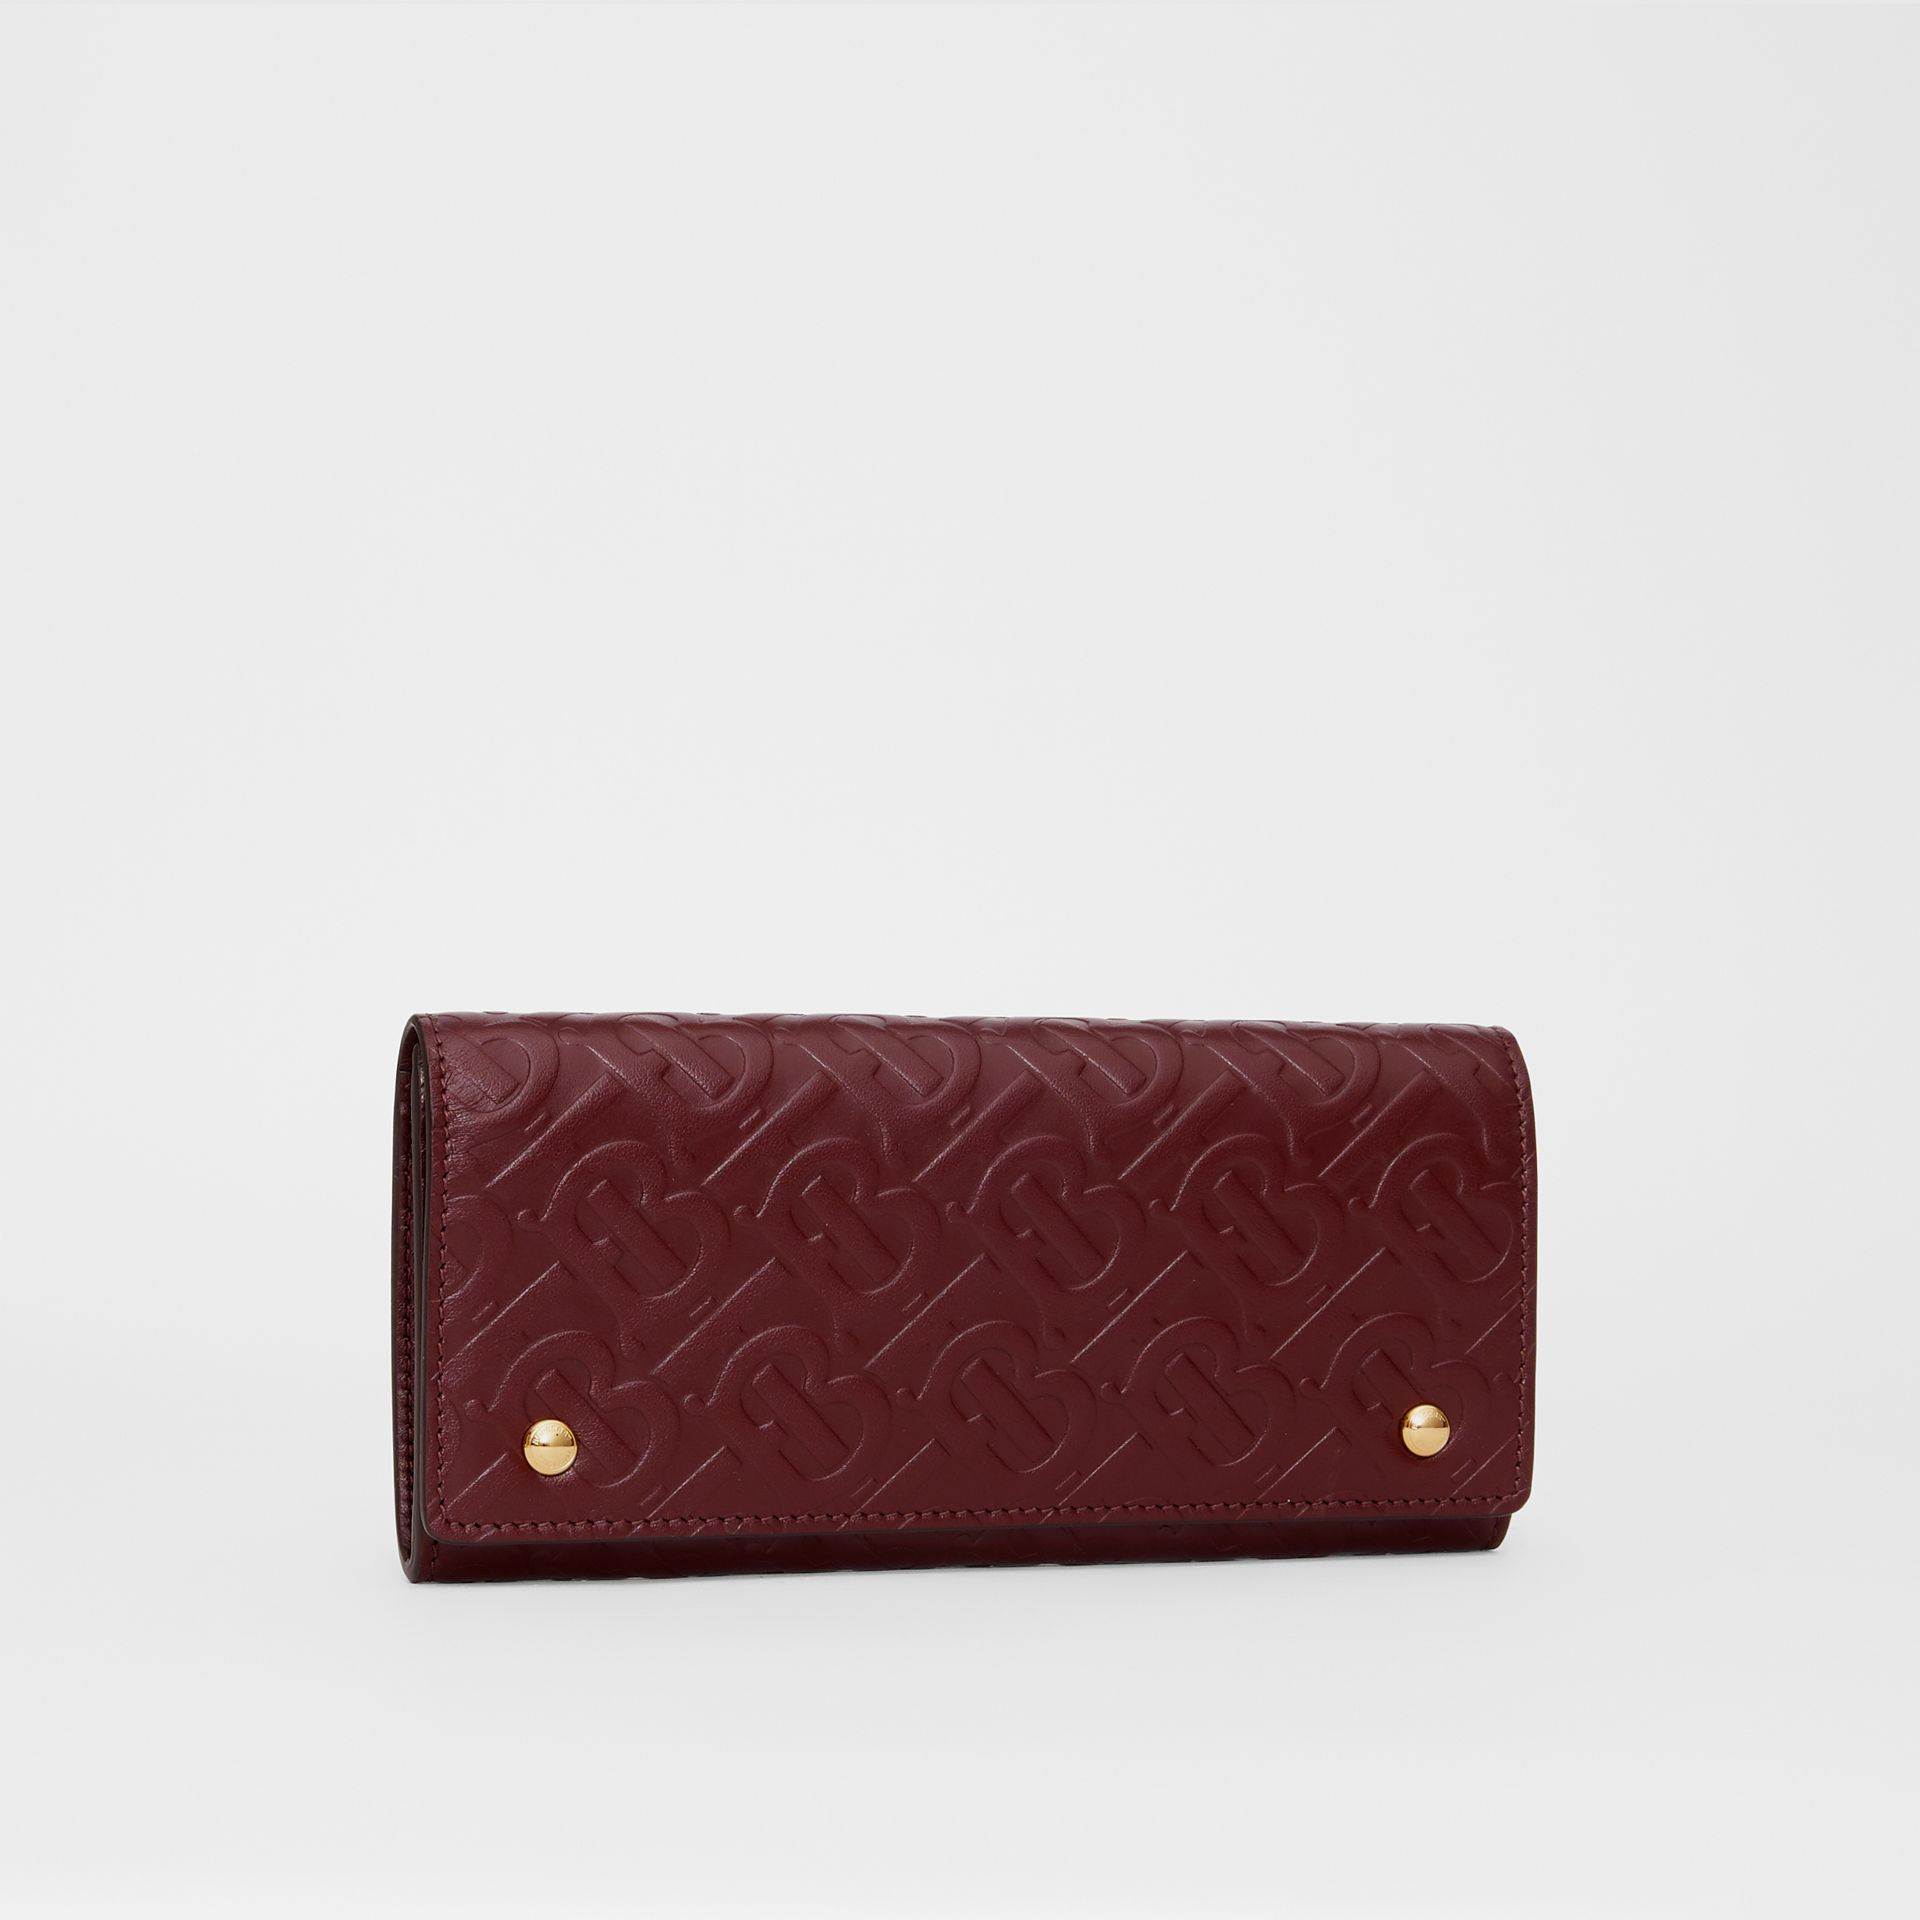 Monogram Leather Continental Wallet in Oxblood - Women | Burberry Canada - gallery image 4